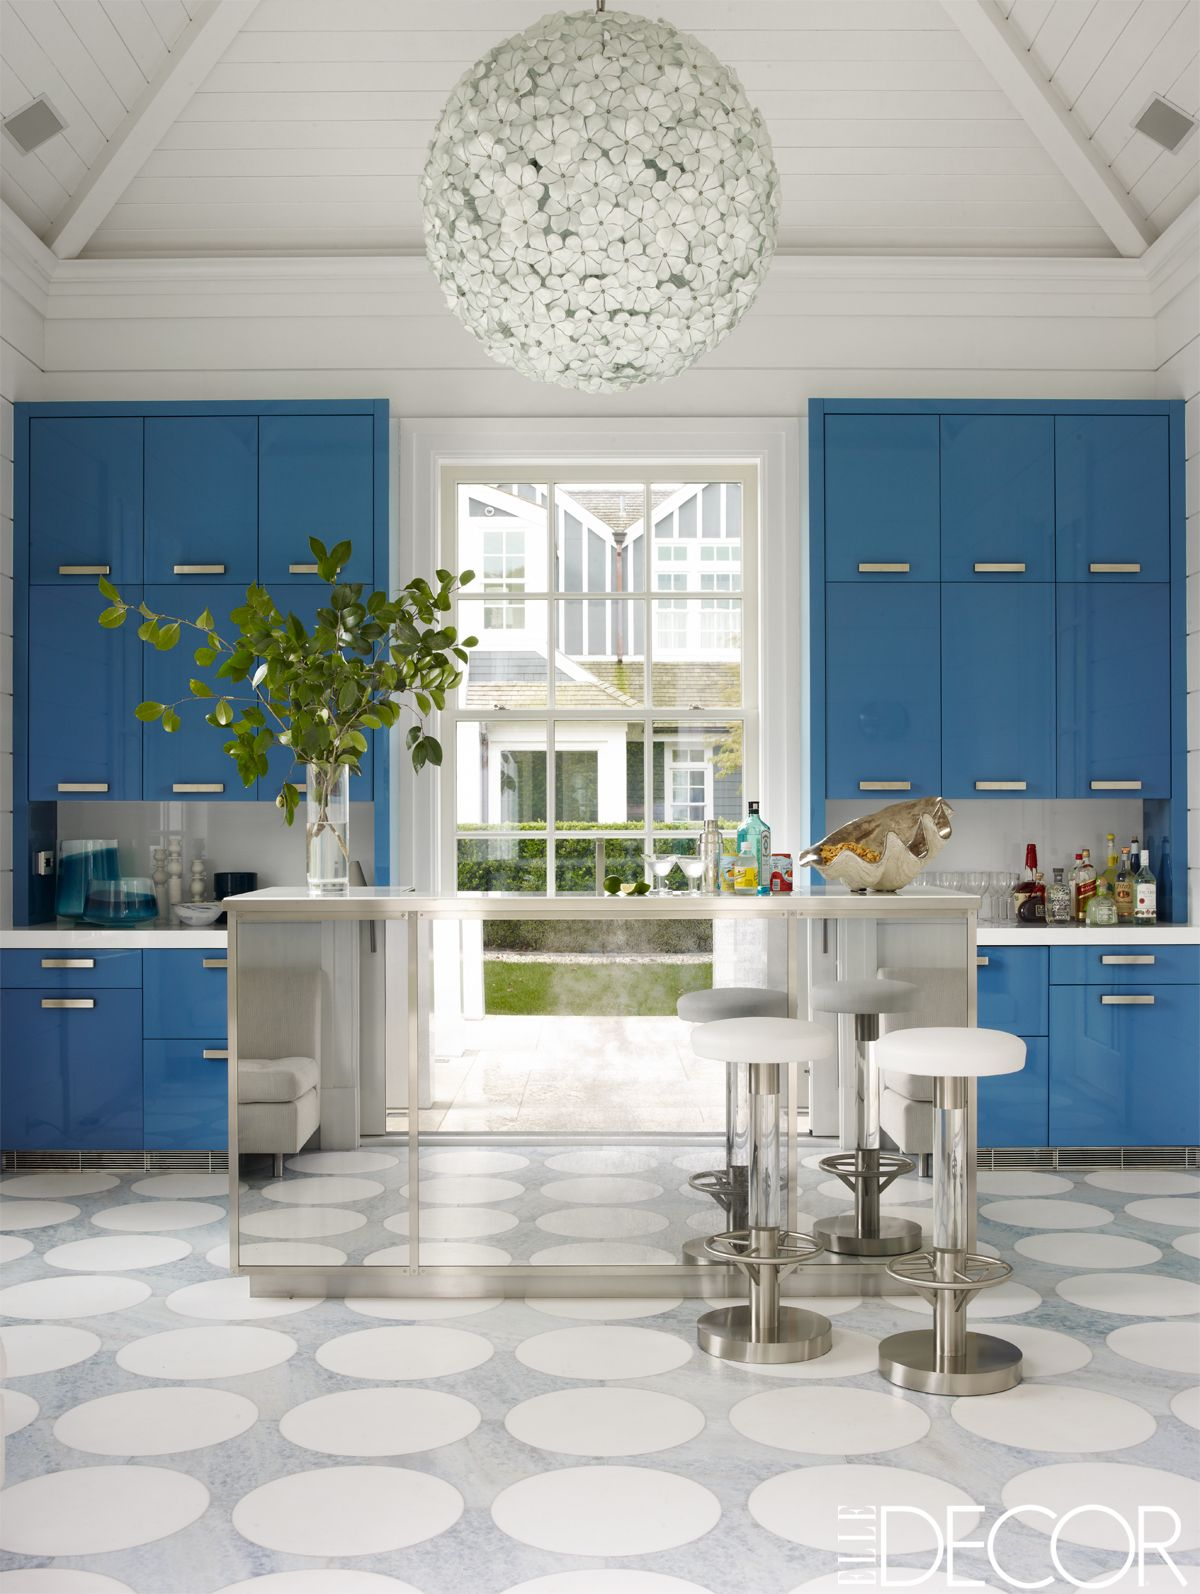 Designer Blue Kitchens Blue Walls Decor Ideas For Kitchens - Blue kitchen decor ideas